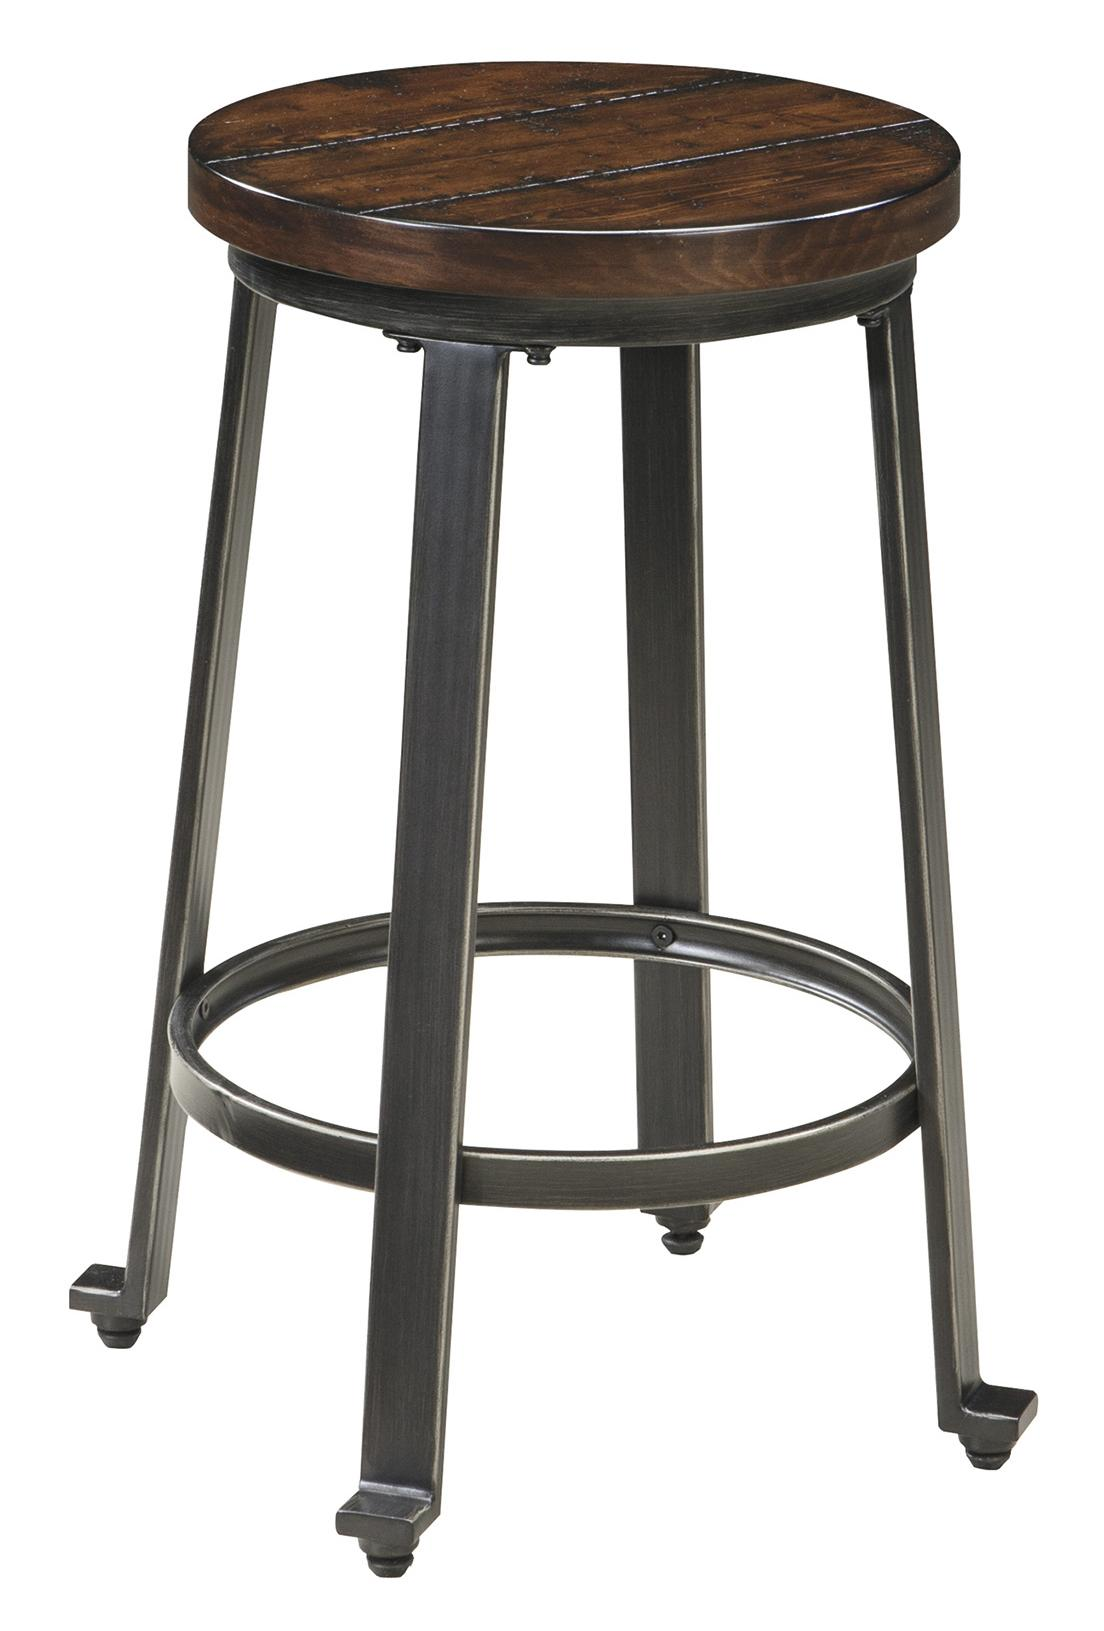 Signature Design By Ashley Challiman Industrial Style Armless Stool Royal Furniture Bar Stool